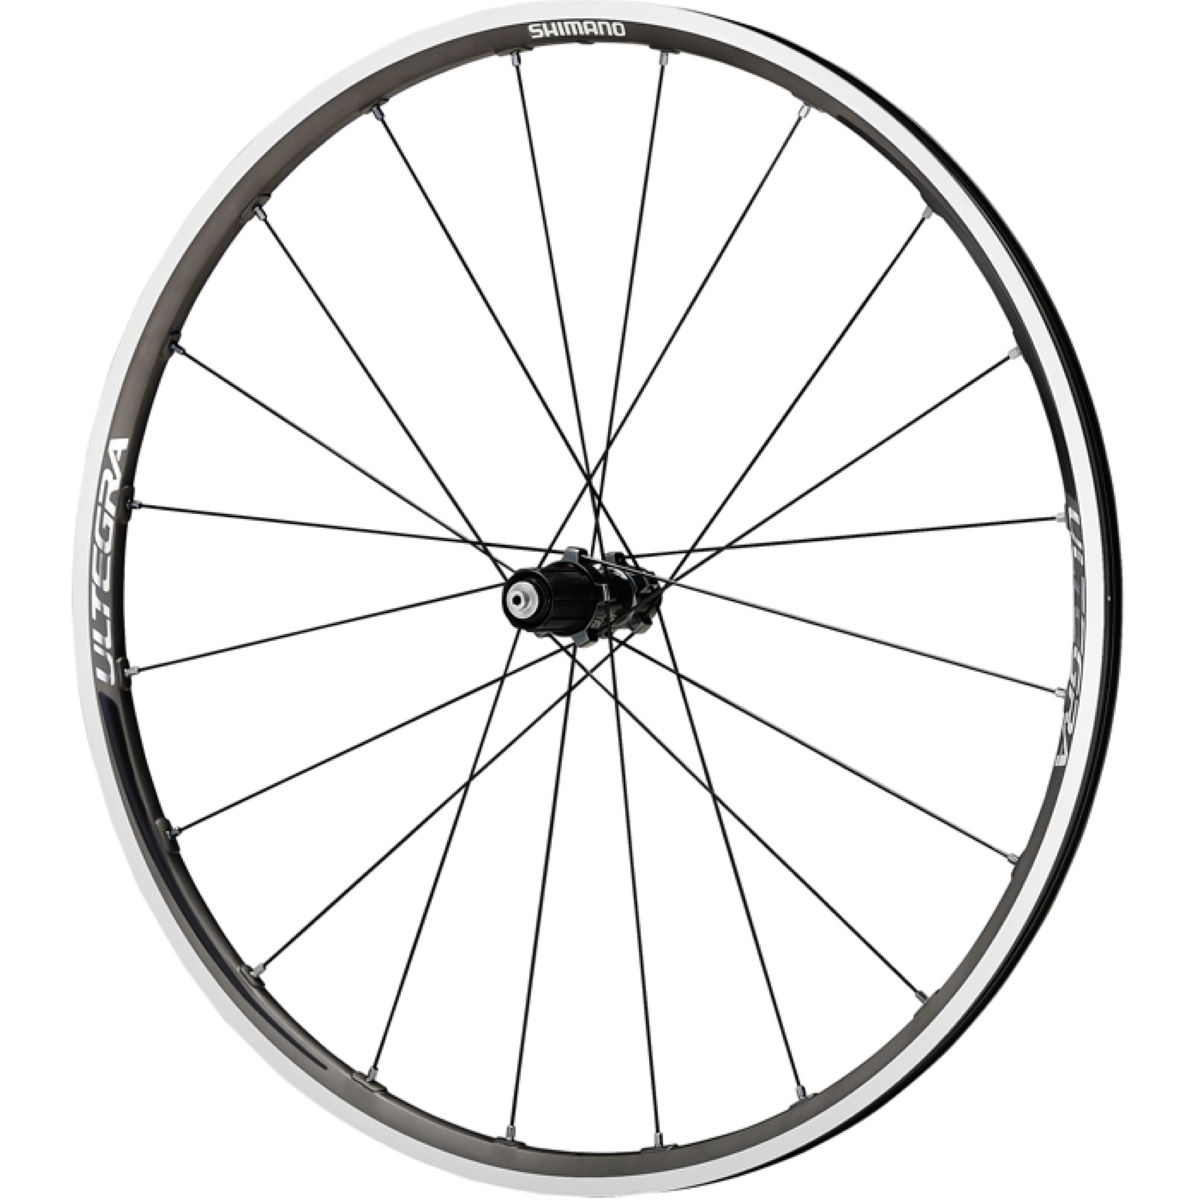 Roue arrière Shimano Ultegra 6800 - Shimano 10/11 Speed Gris Roues performance